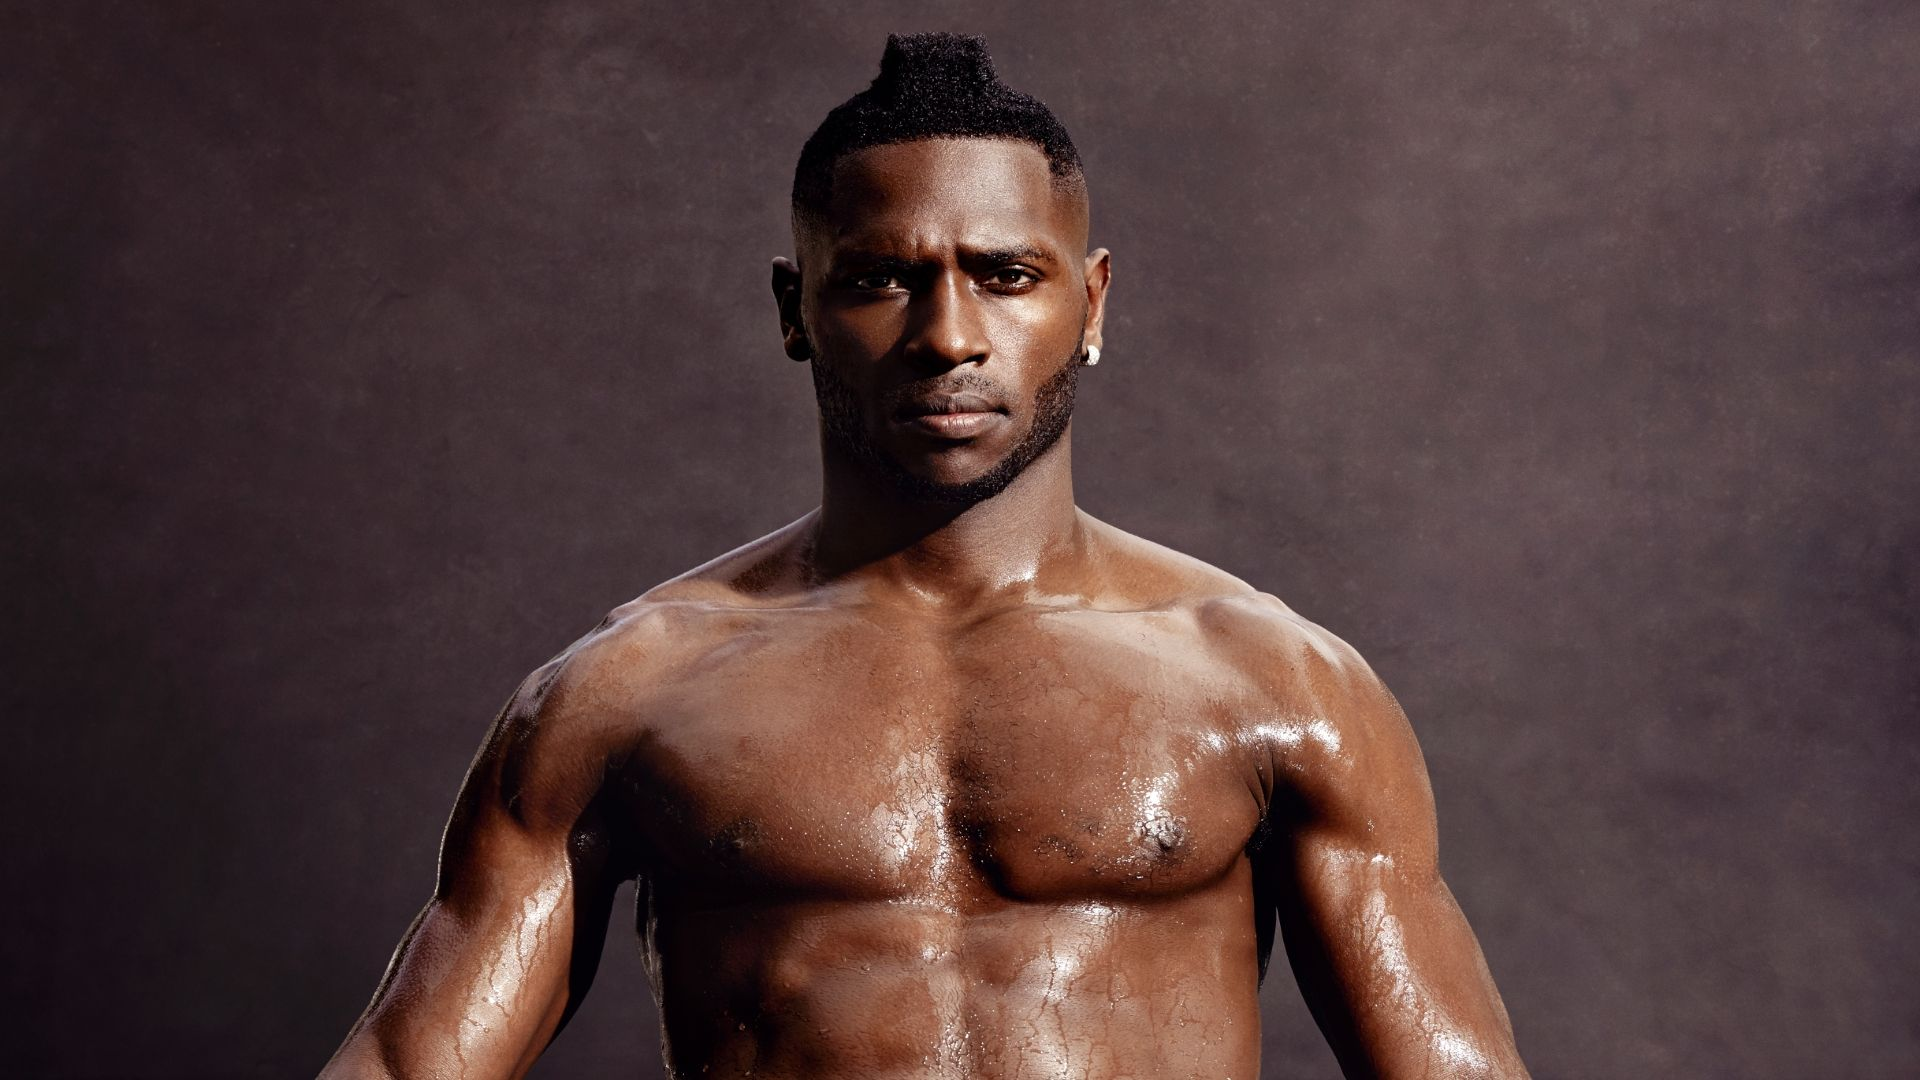 The Body Issue 2016: Antonio Brown